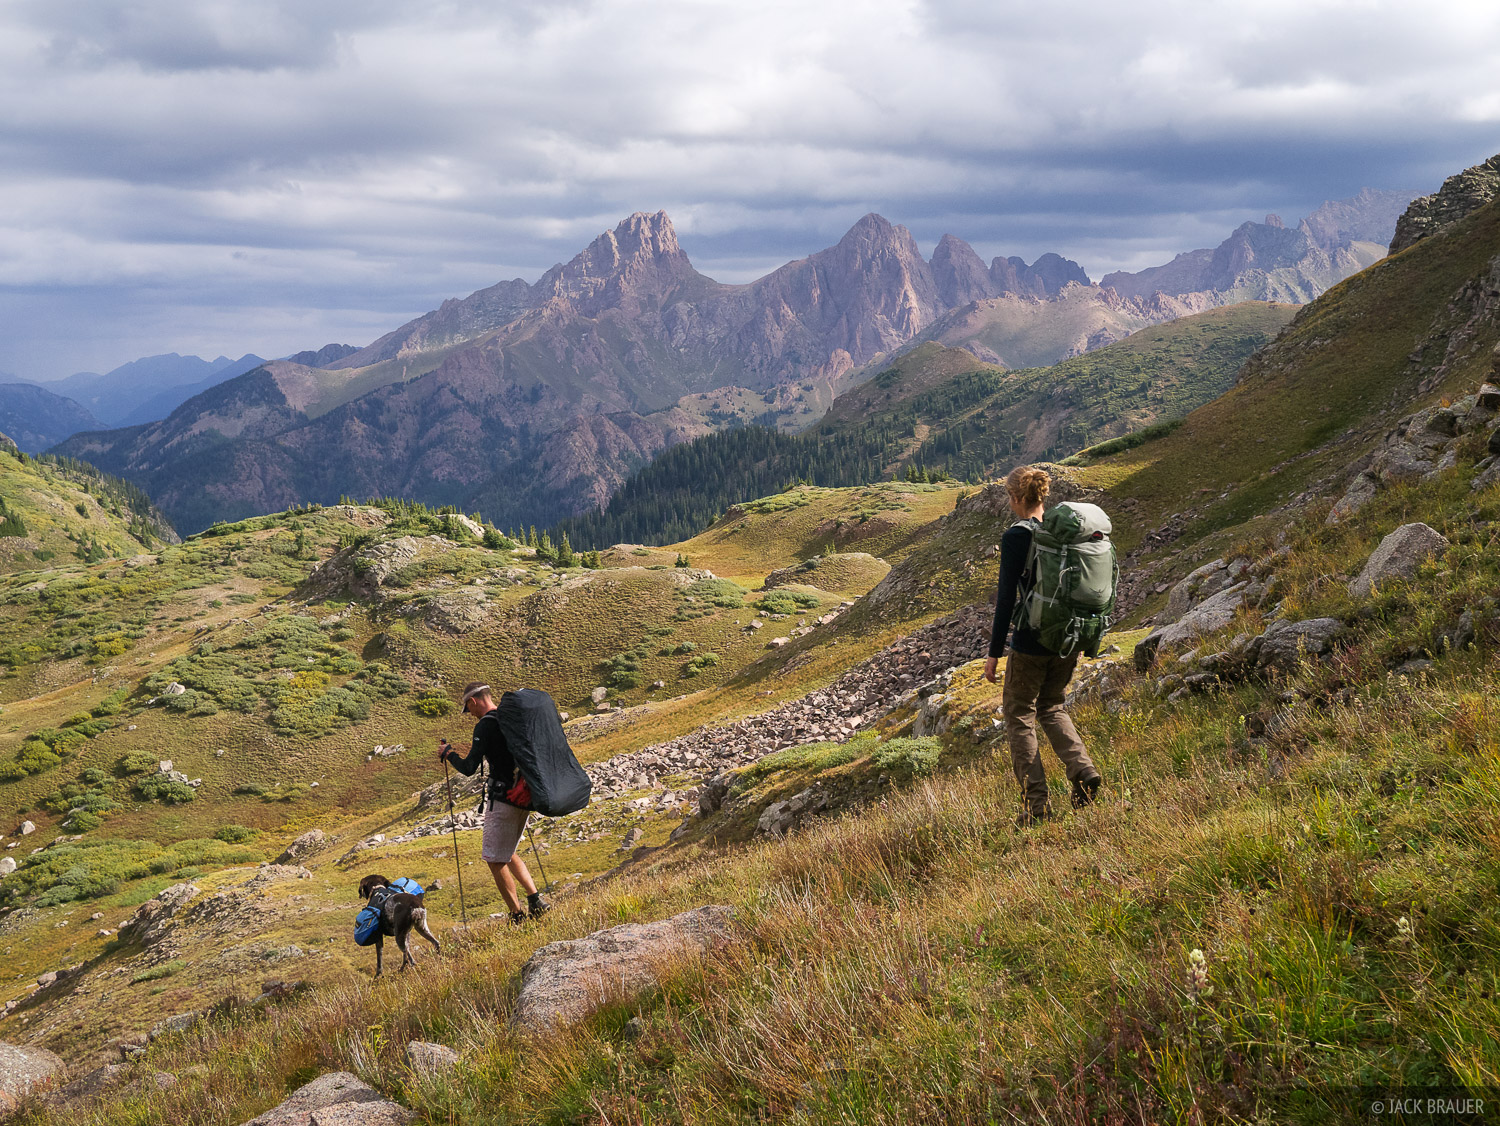 Hiking into a gorgeous basin below the Needle Mountains.